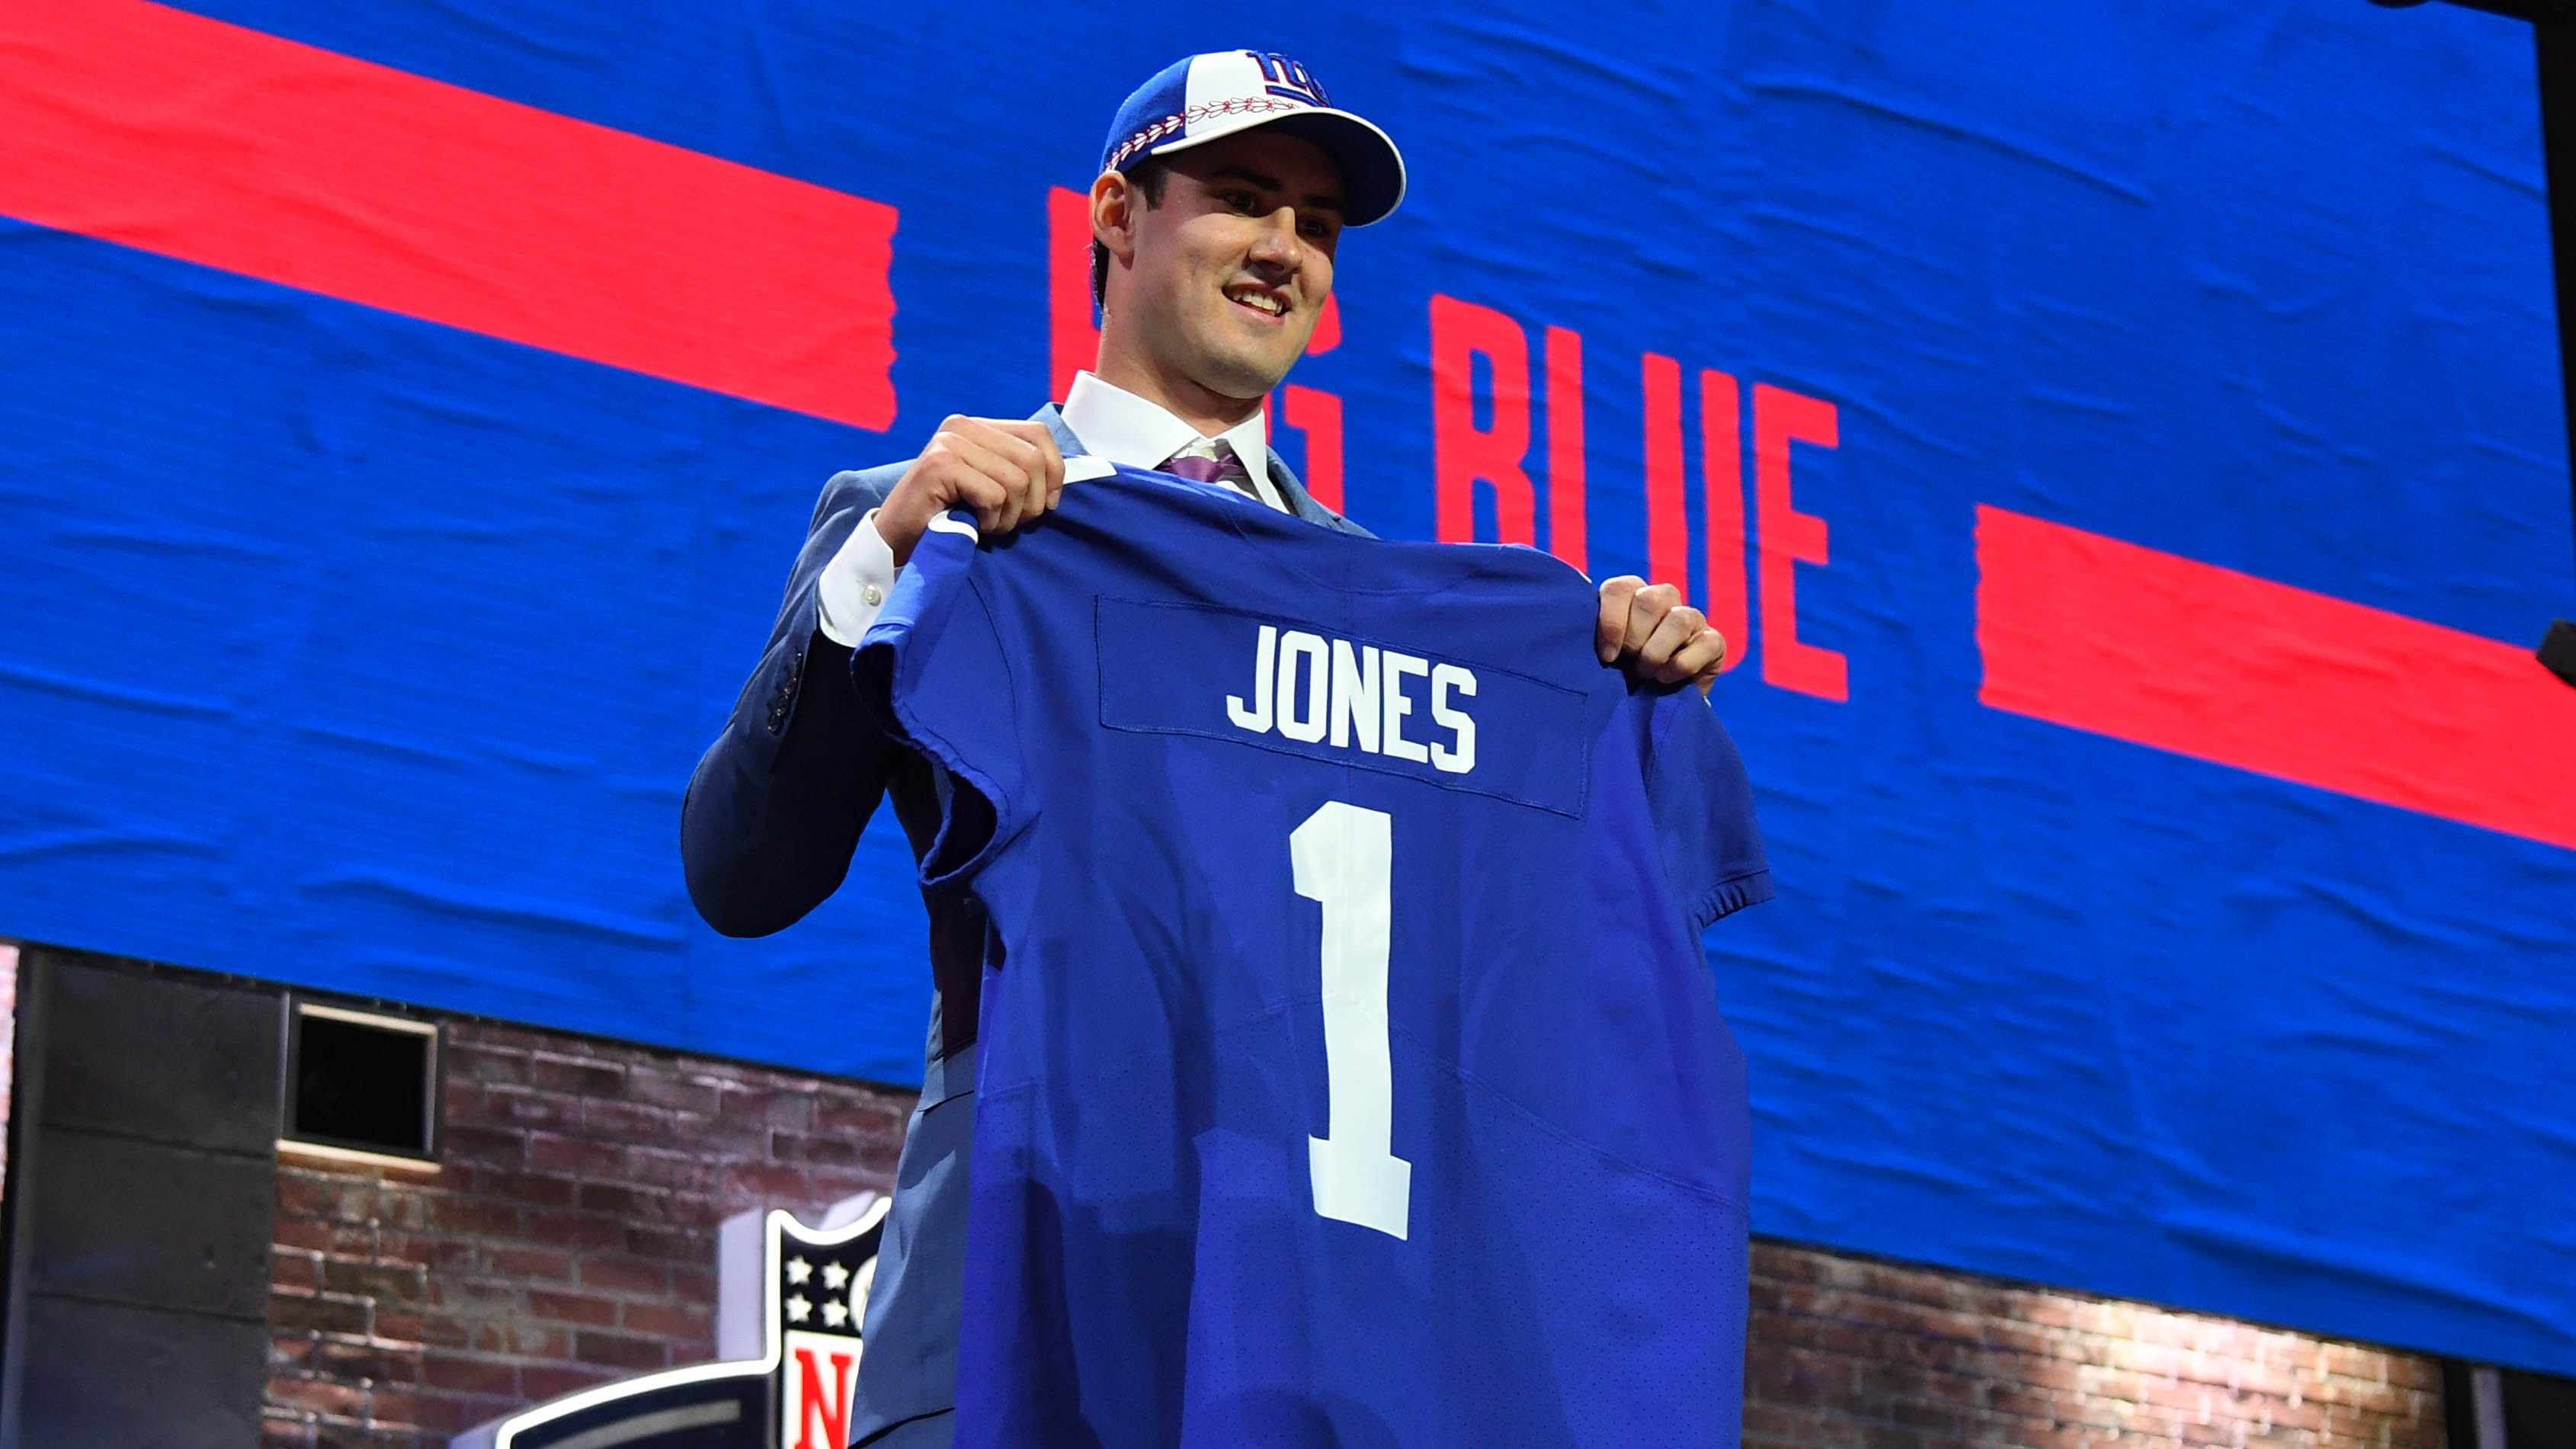 Daniel Jones (Duke) is selected as the number six overall pick to the New York Giants in the first round of the 2019 NFL Draft in Downtown Nashville.